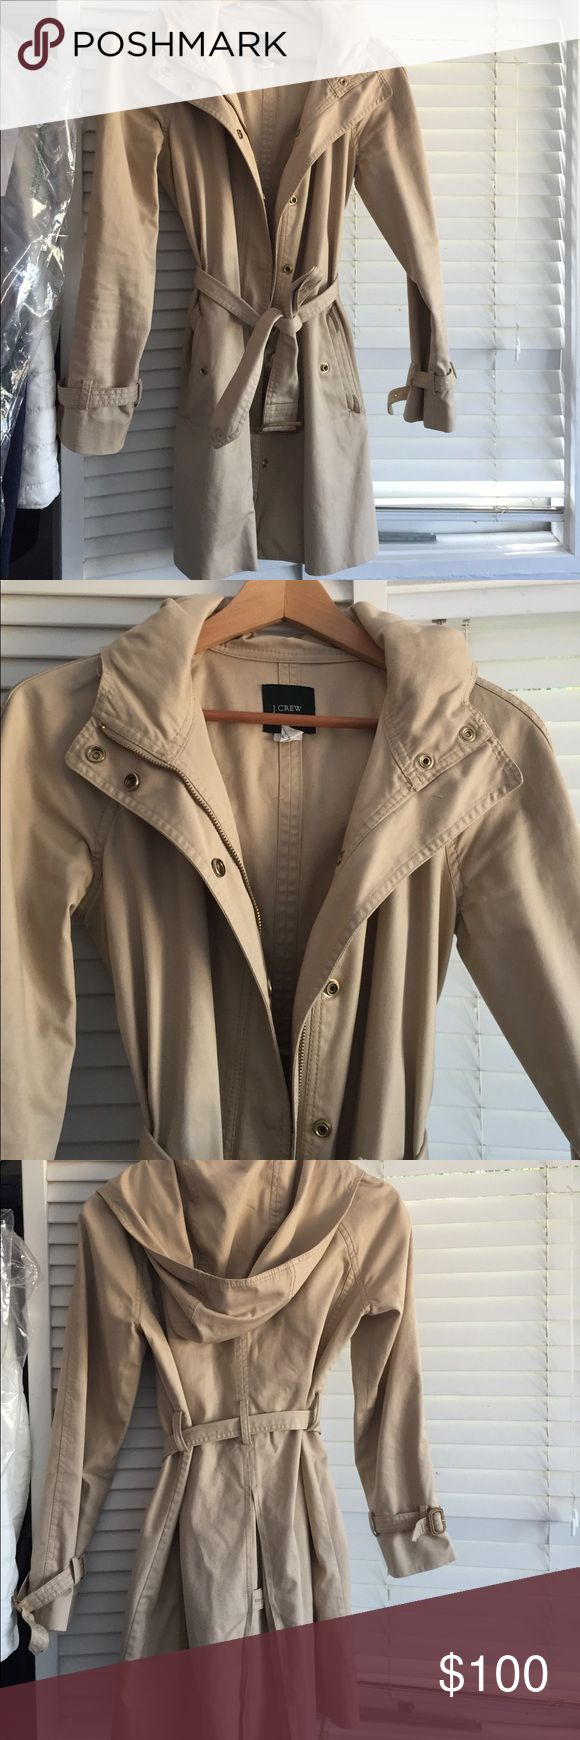 Jcrew trench coat with hood size 0 Jcrew hooded trench coat size 0 only ever dry cleaned. In great condition. Mid thigh length J. Crew Jackets & Coats Trench Coats